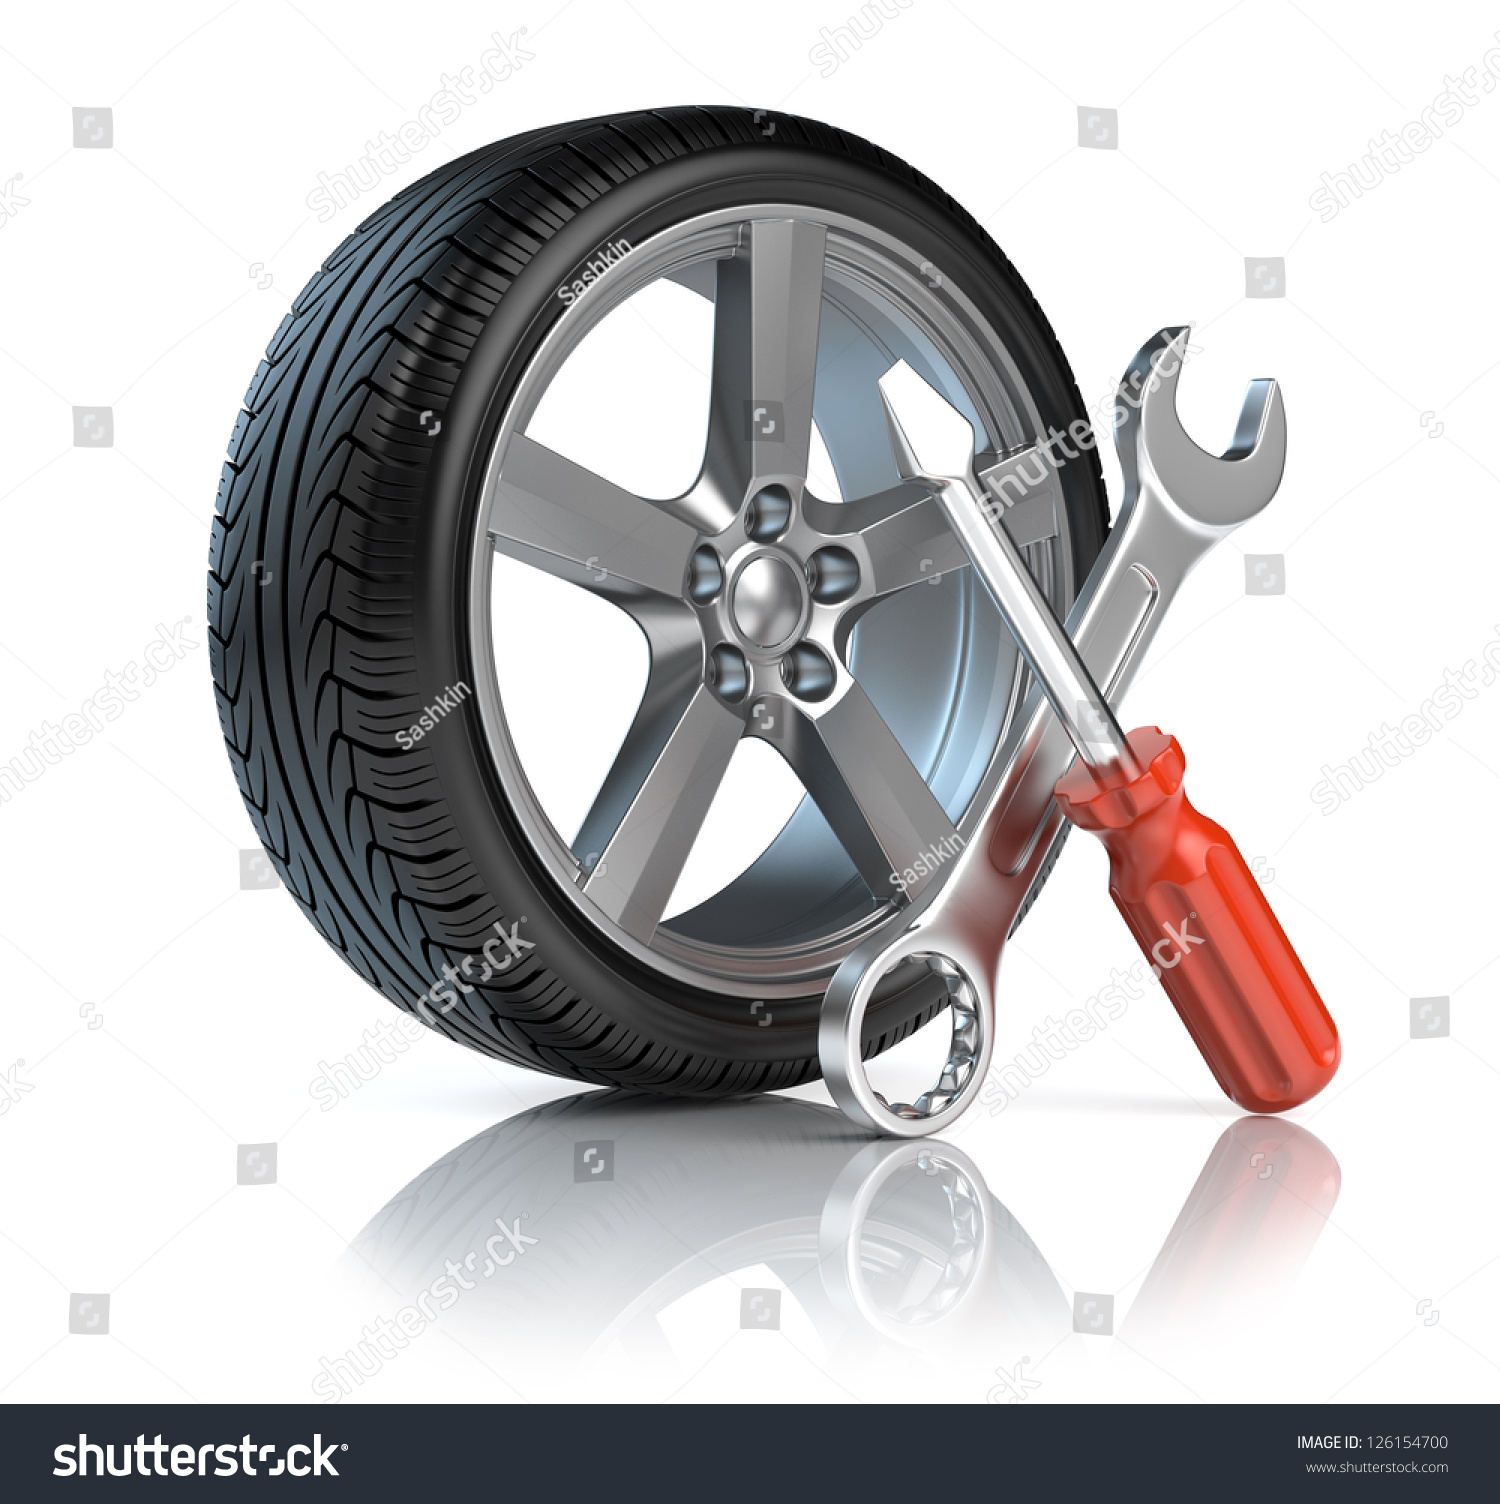 wheel repair stock illustration 126154700 shutterstock. Black Bedroom Furniture Sets. Home Design Ideas